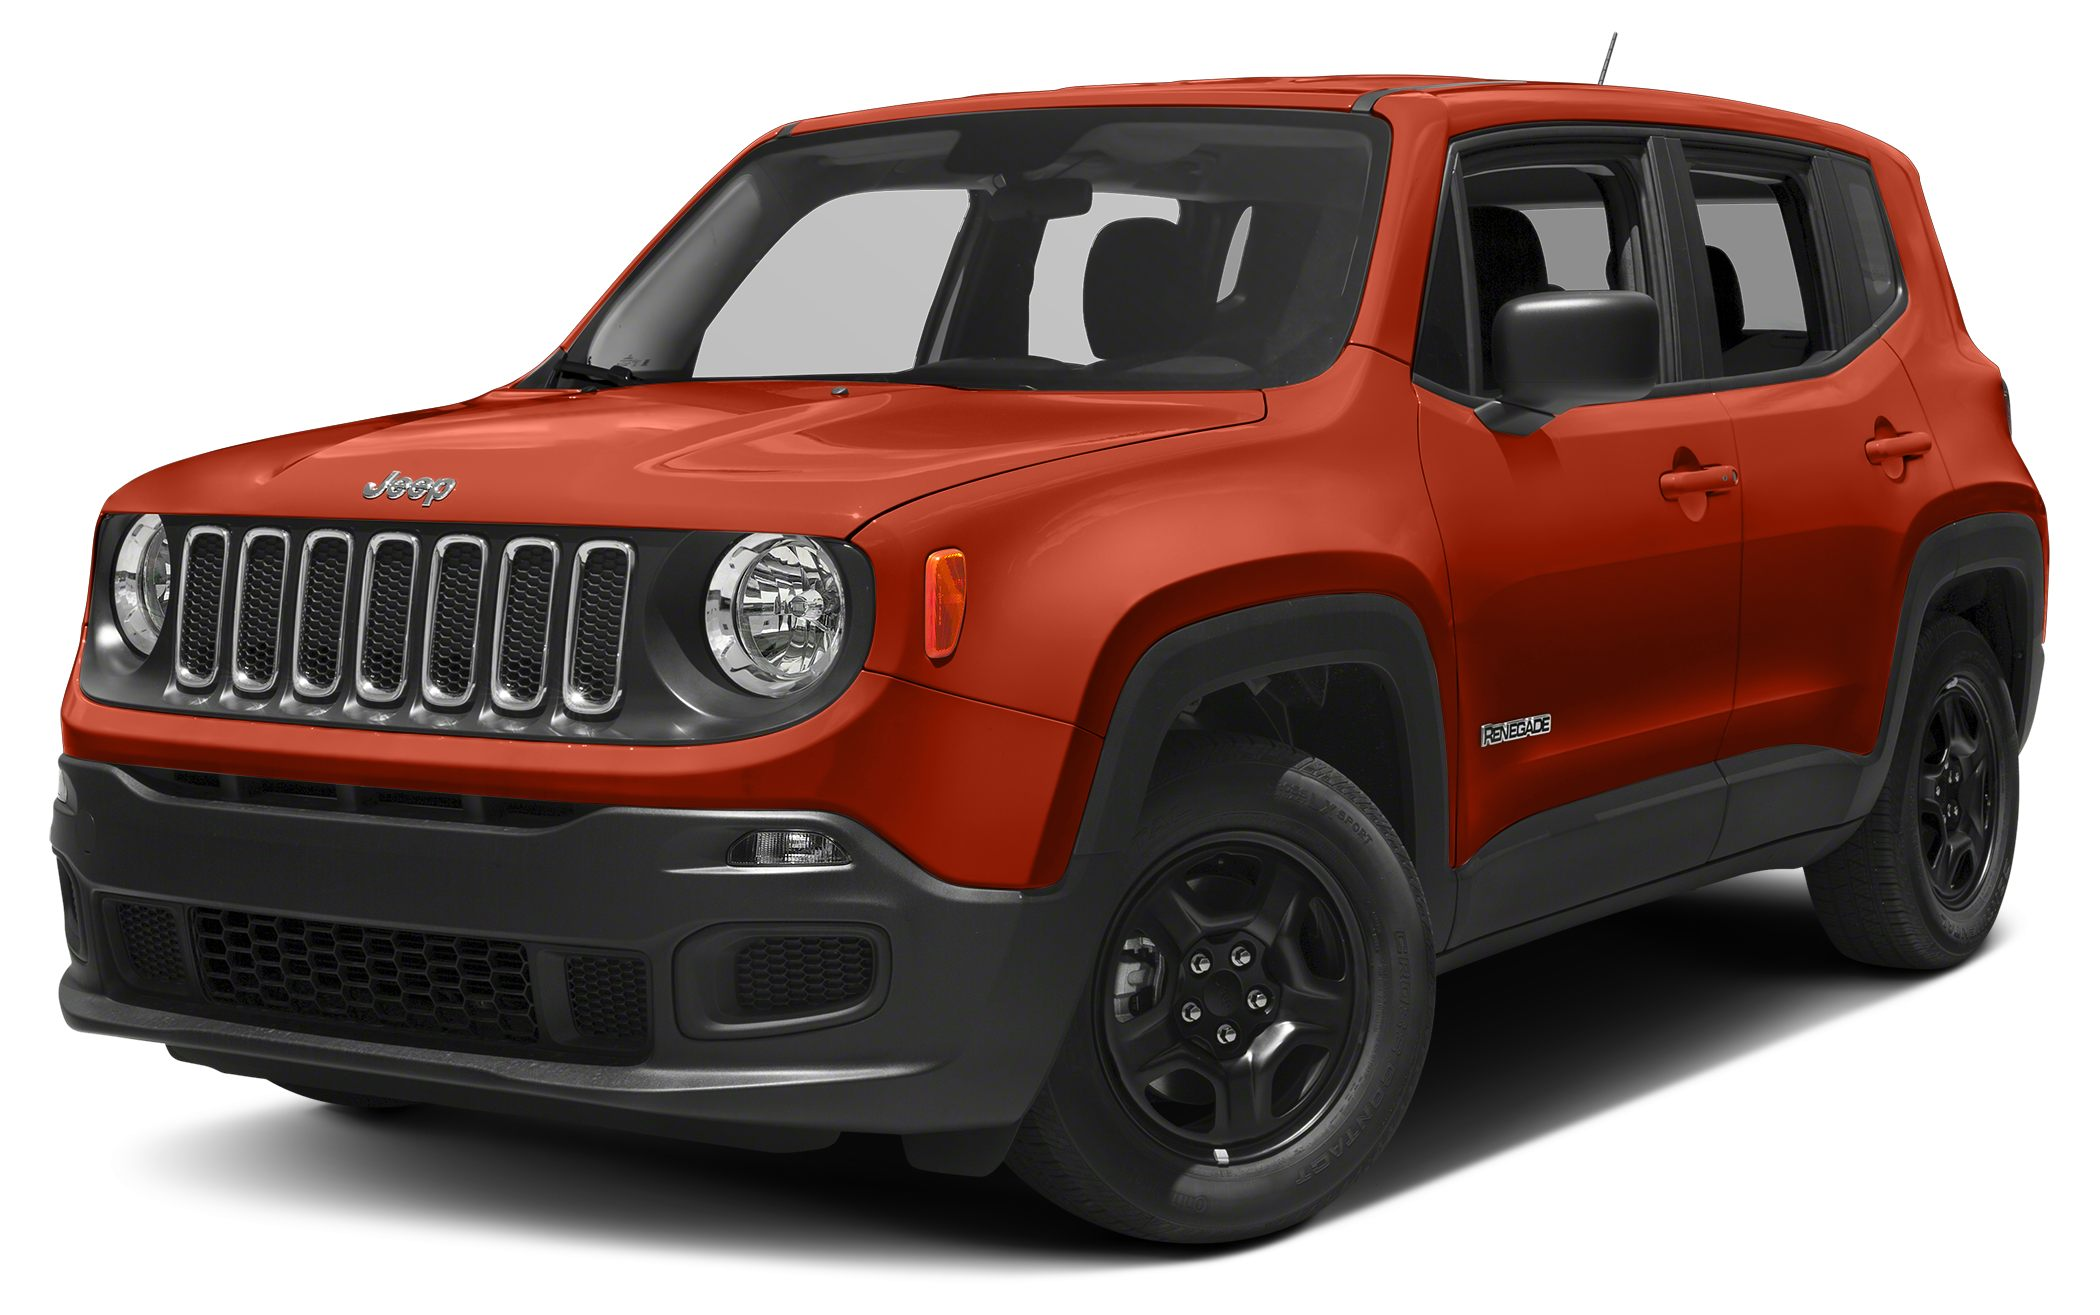 2015 Jeep Renegade Latitude This 2015 Jeep Renegade 4dr FWD 4dr Latitude features a 24L 4 Cylinde